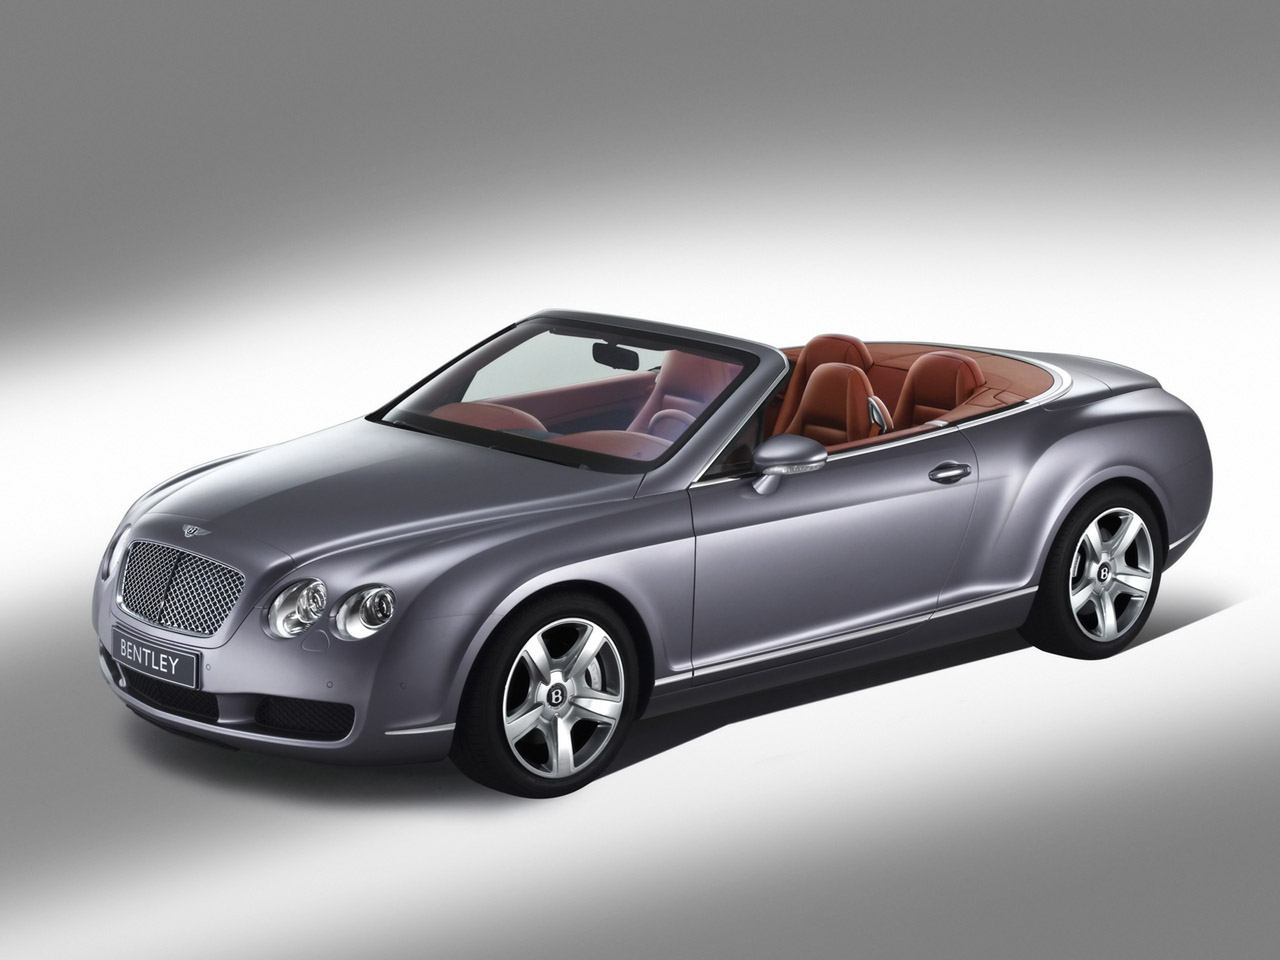 2008 Bentley Continental Gtc Pictures Cargurus